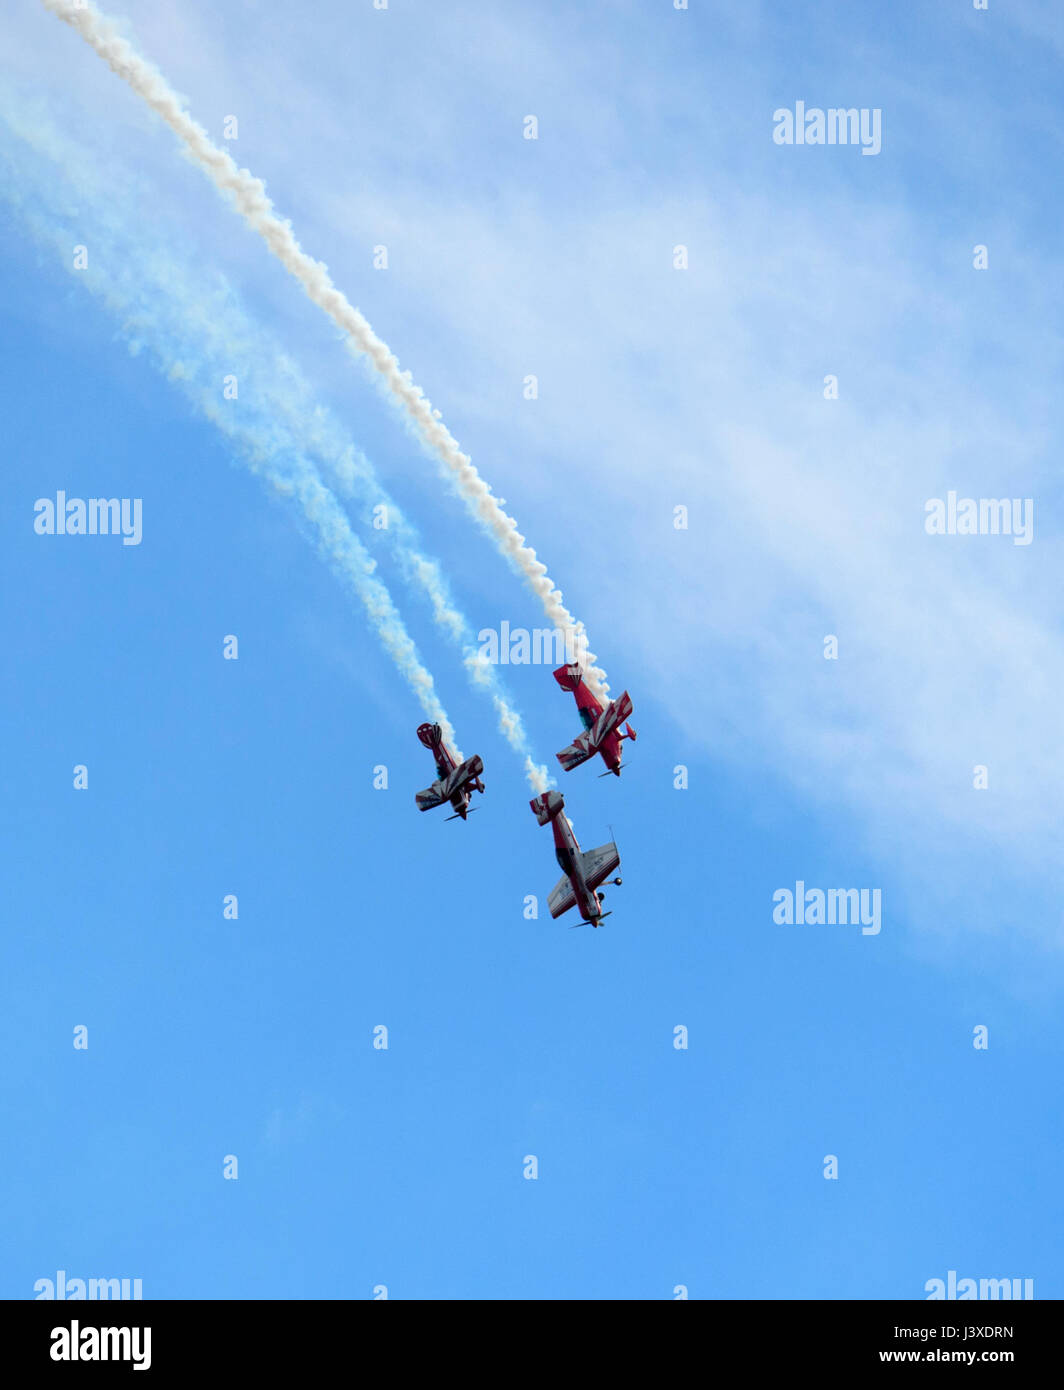 Paul Bennet's Wolf Pitts Pro performing at Wings over Illawarra 2017 Airshow, Albion Park, NSW, Australia - Stock Image